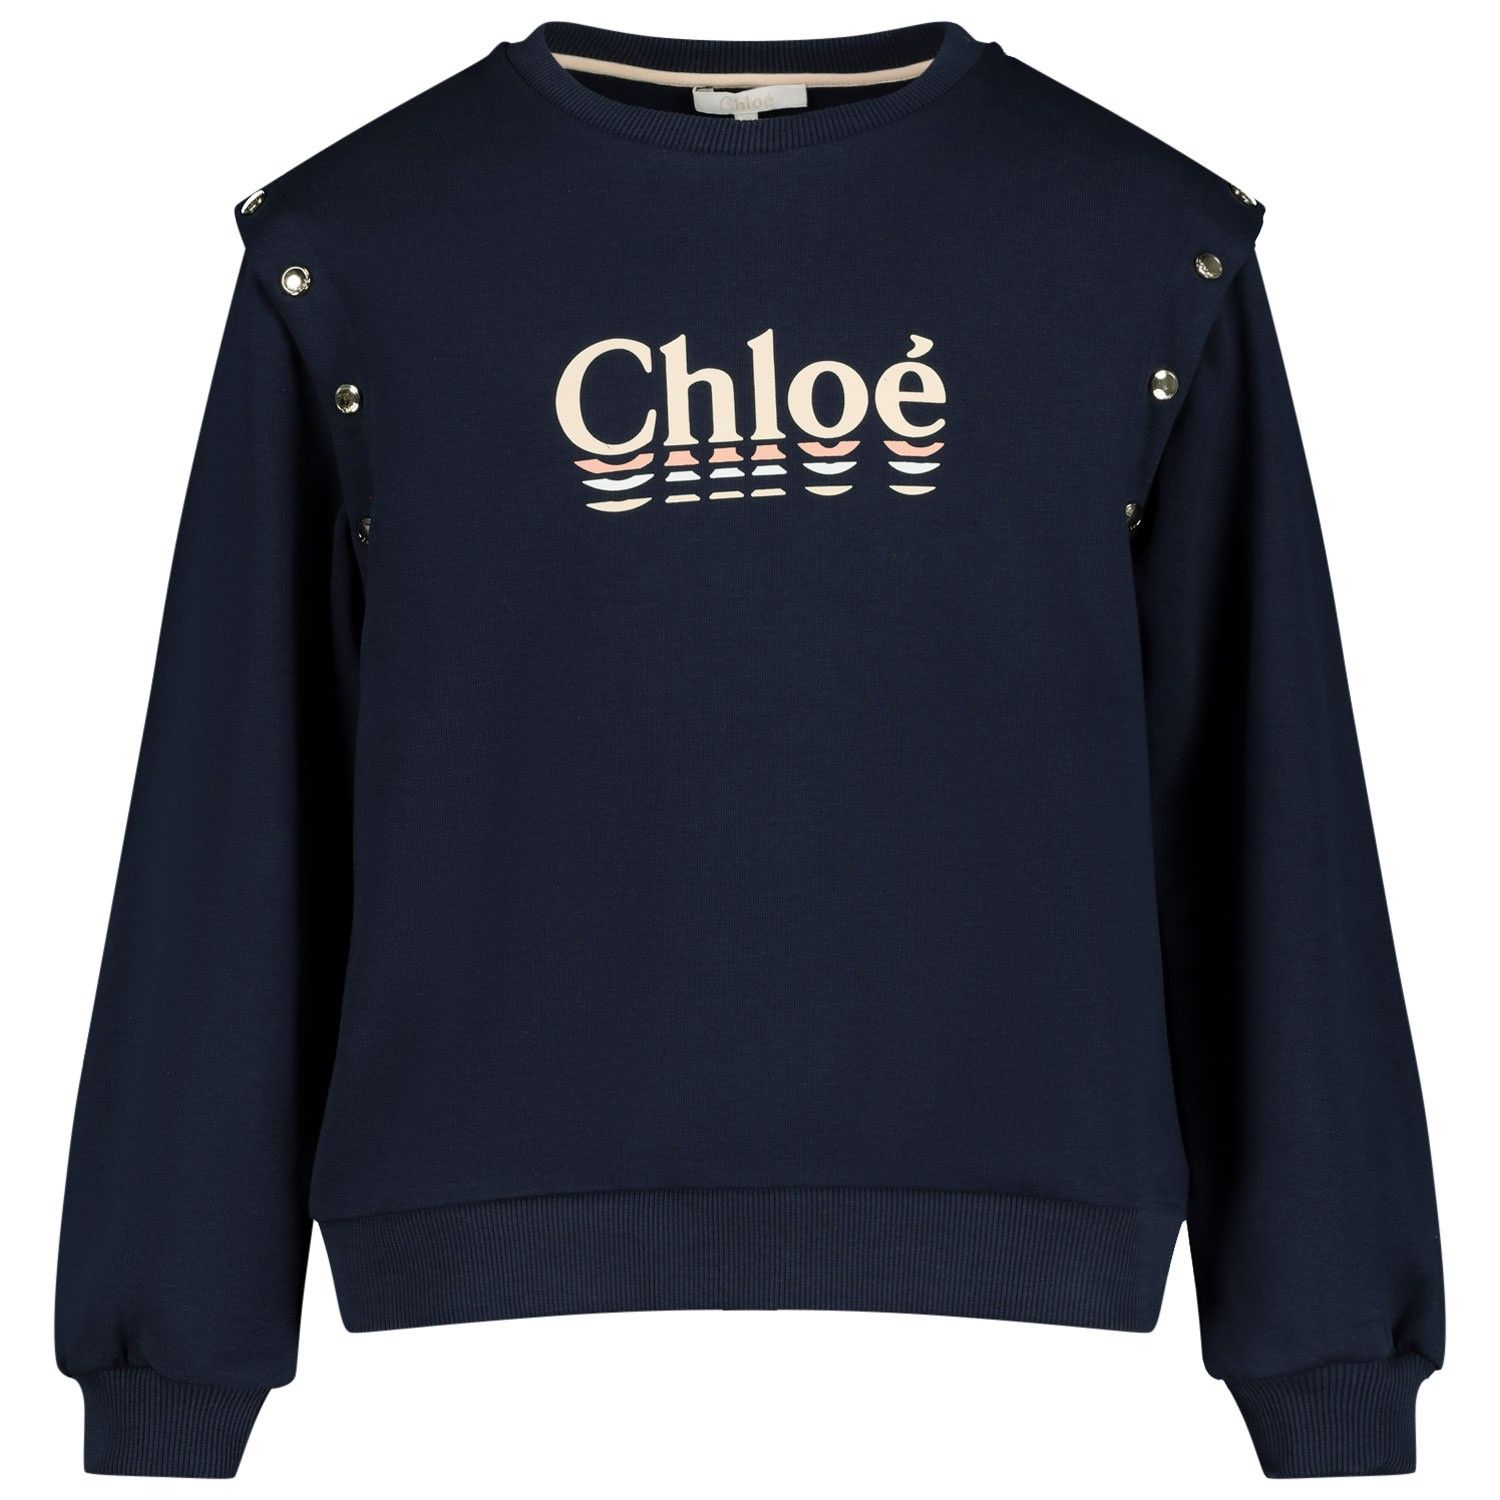 Picture of Chloé C15B09 kids sweater navy